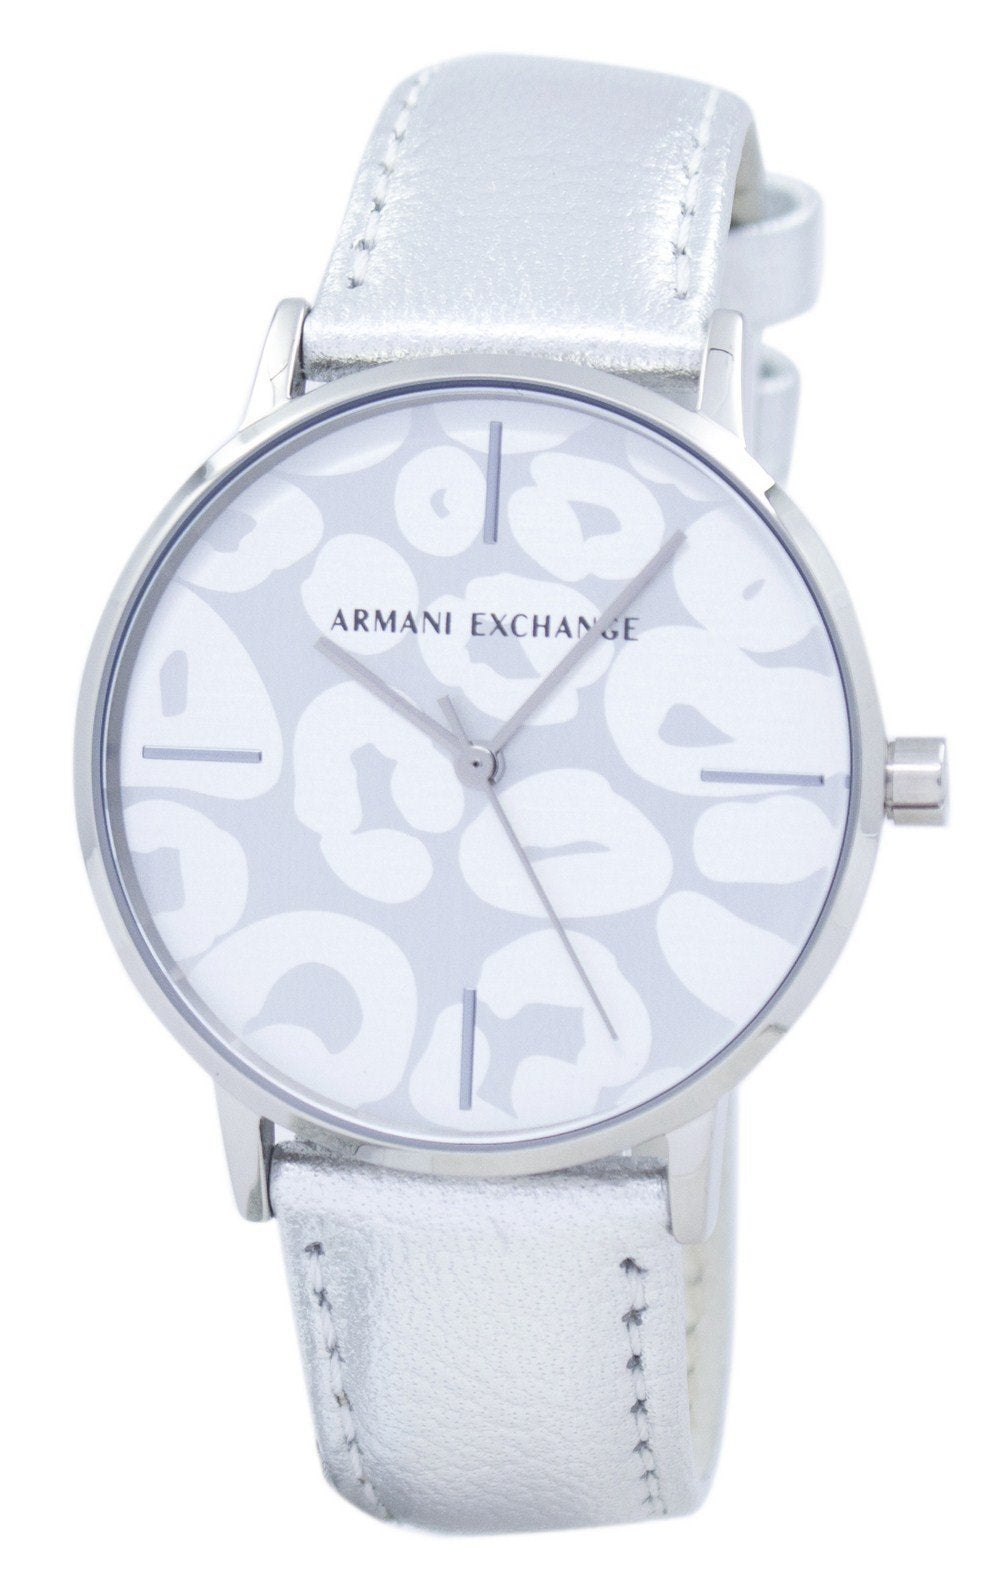 Armani Exchange Analog Quartz AX5539 Women's Watch, best prices, cheapest, discount, new, Cruze Watches